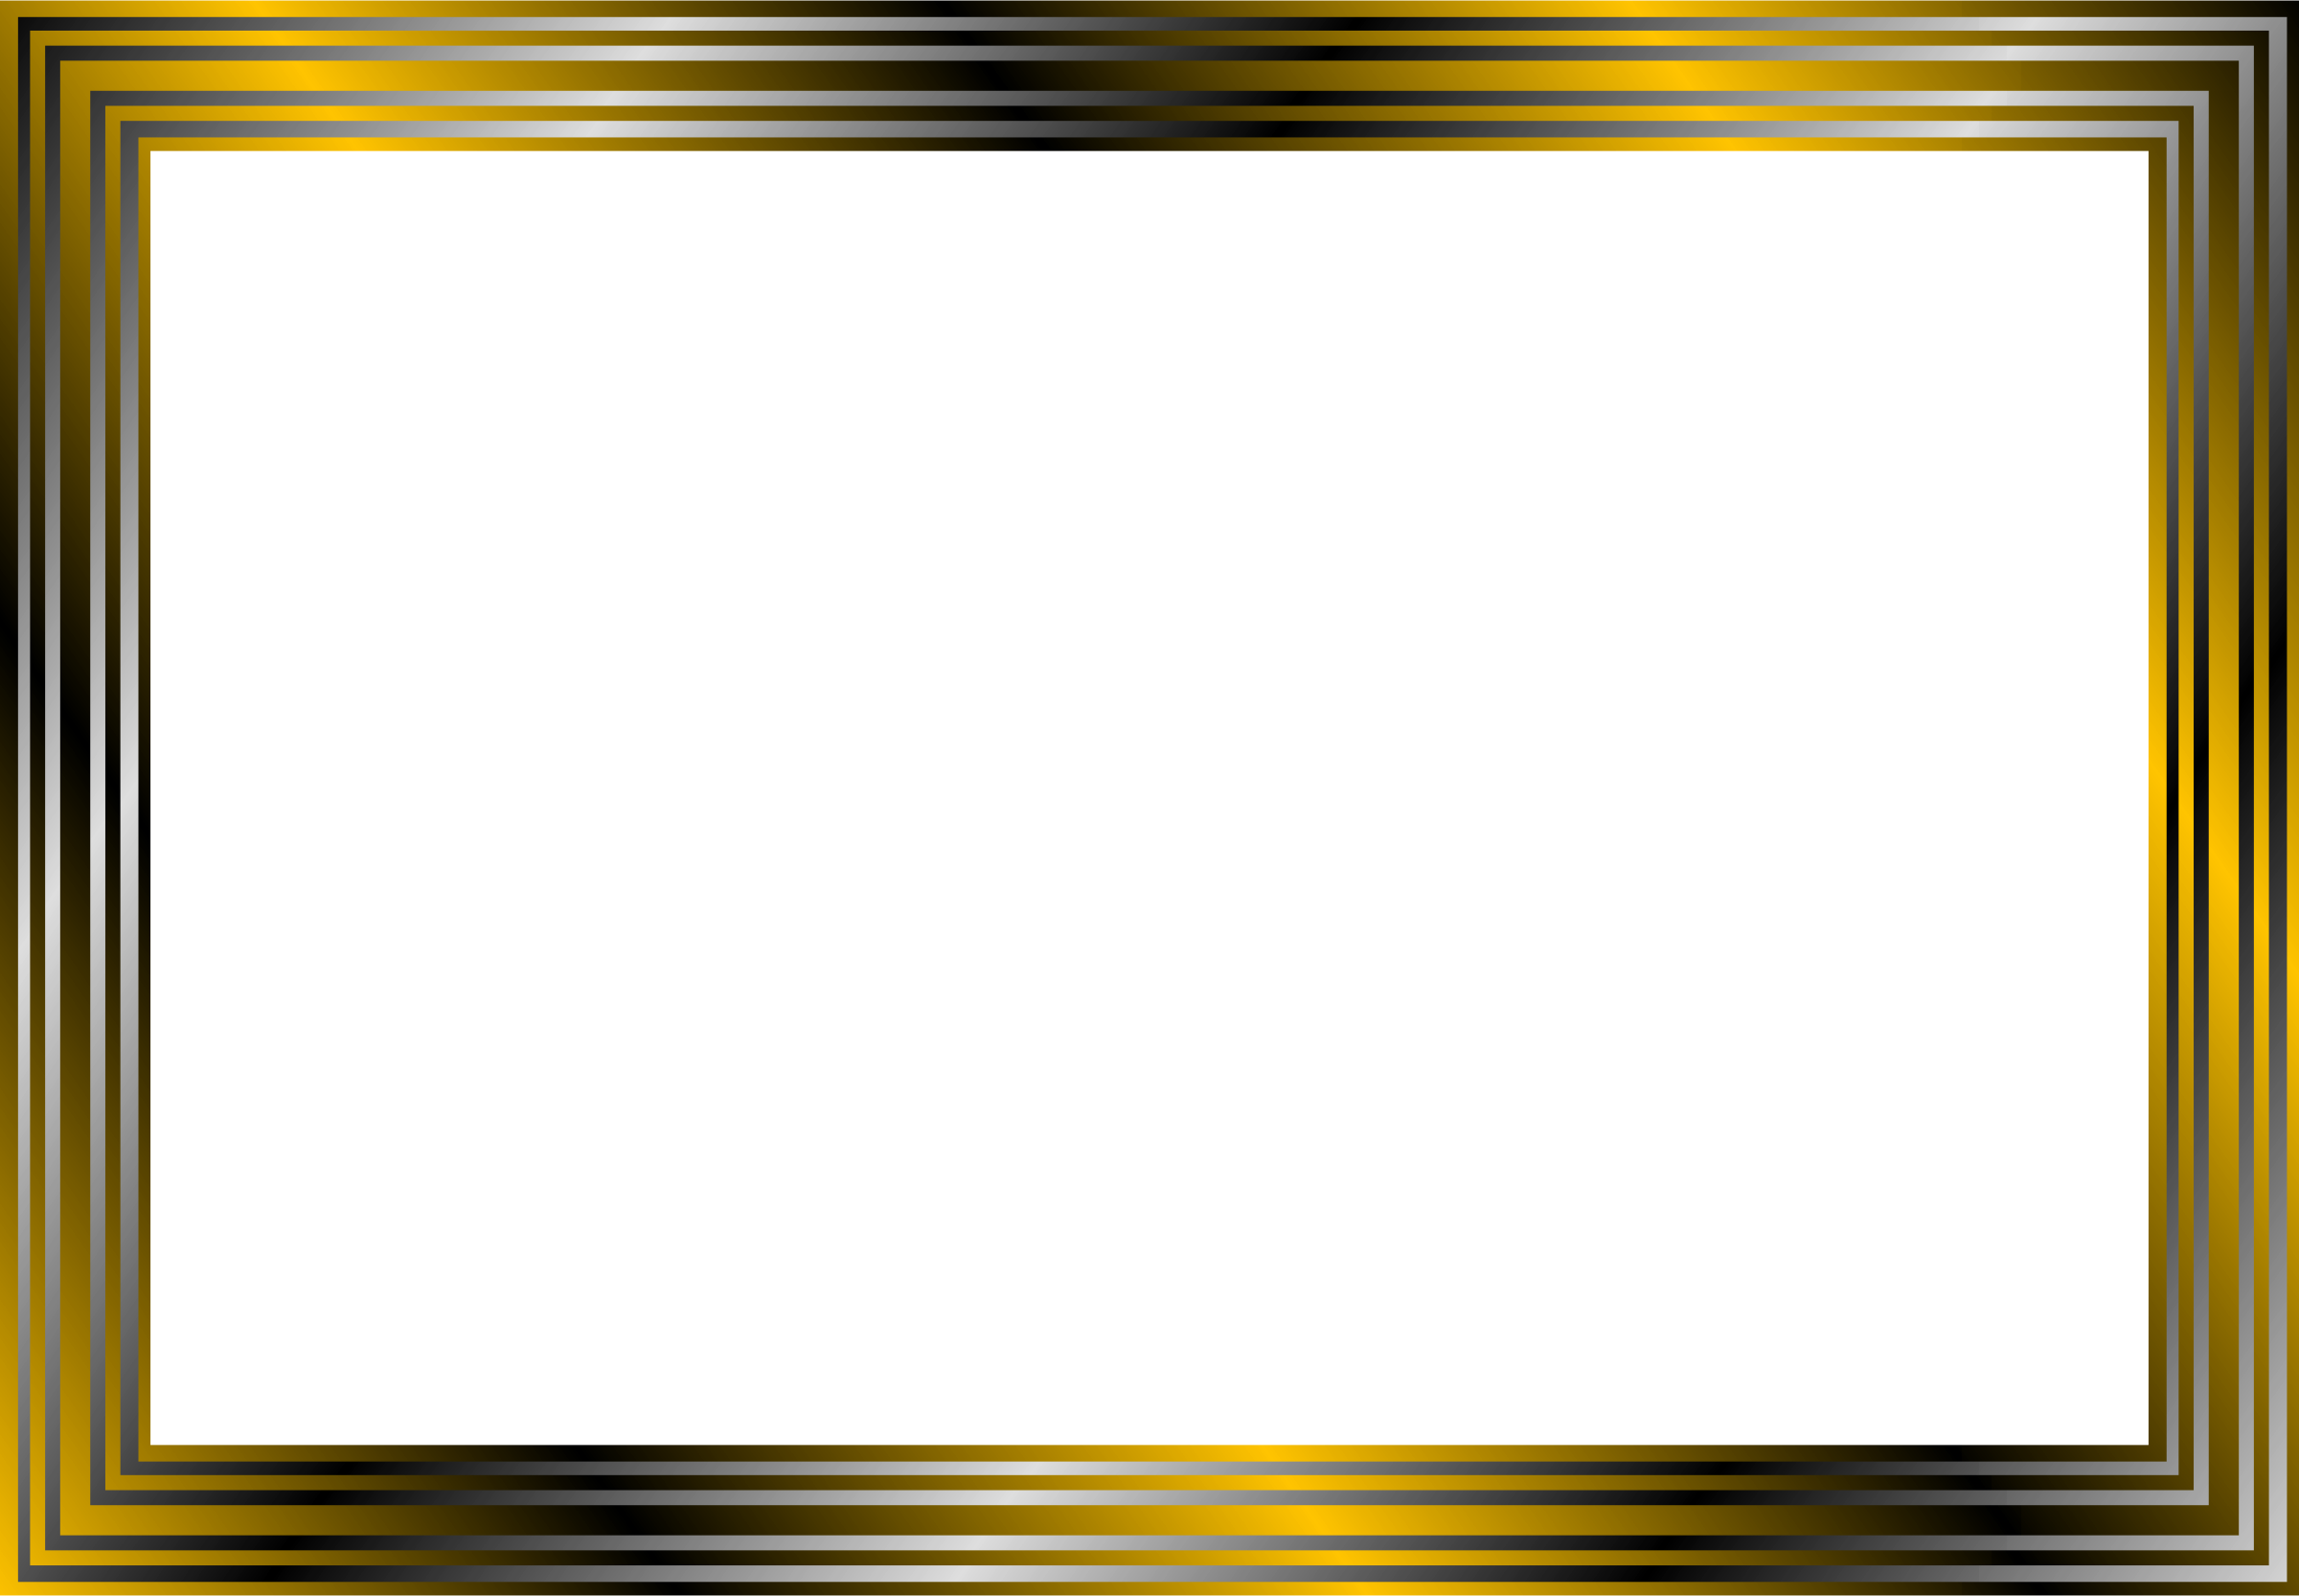 2400x1666 Gold And Black Frame Vector Clipart Image